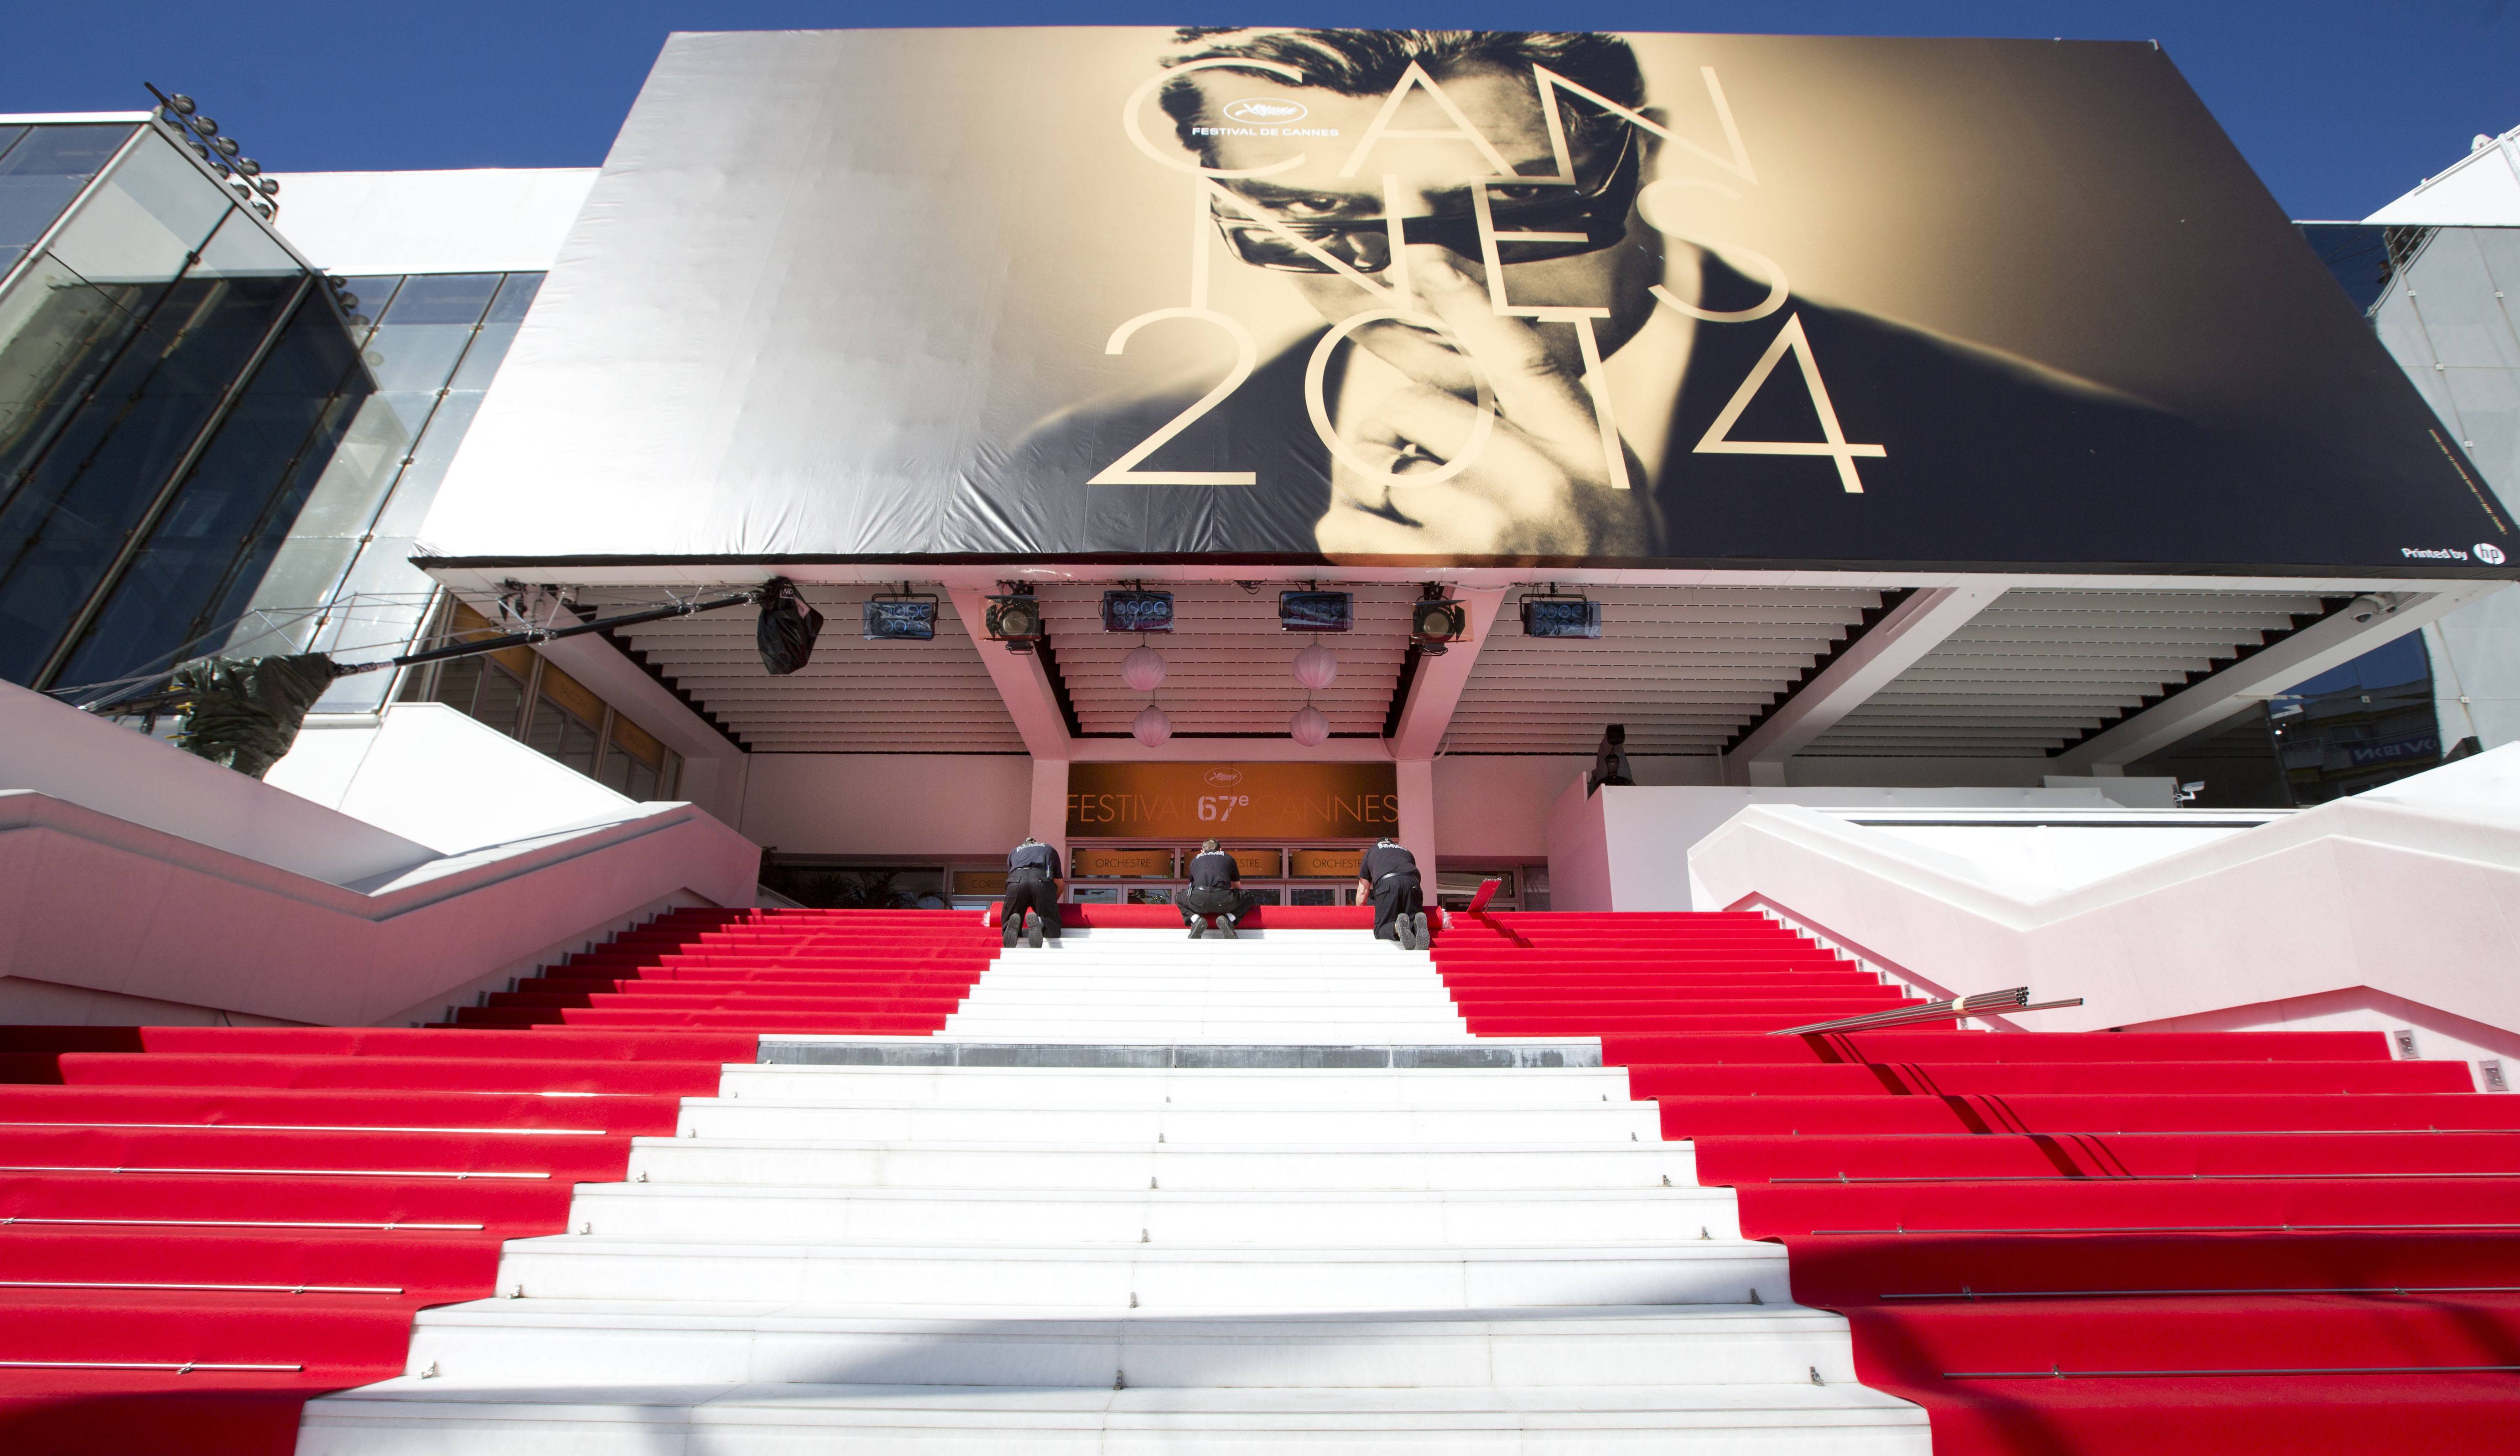 Workers prepare the red carpet Wednesday on the stairs of the Palais des Festivals before the start of the 67th Cannes Film Festival in southern France.  The festival runs until May 25.